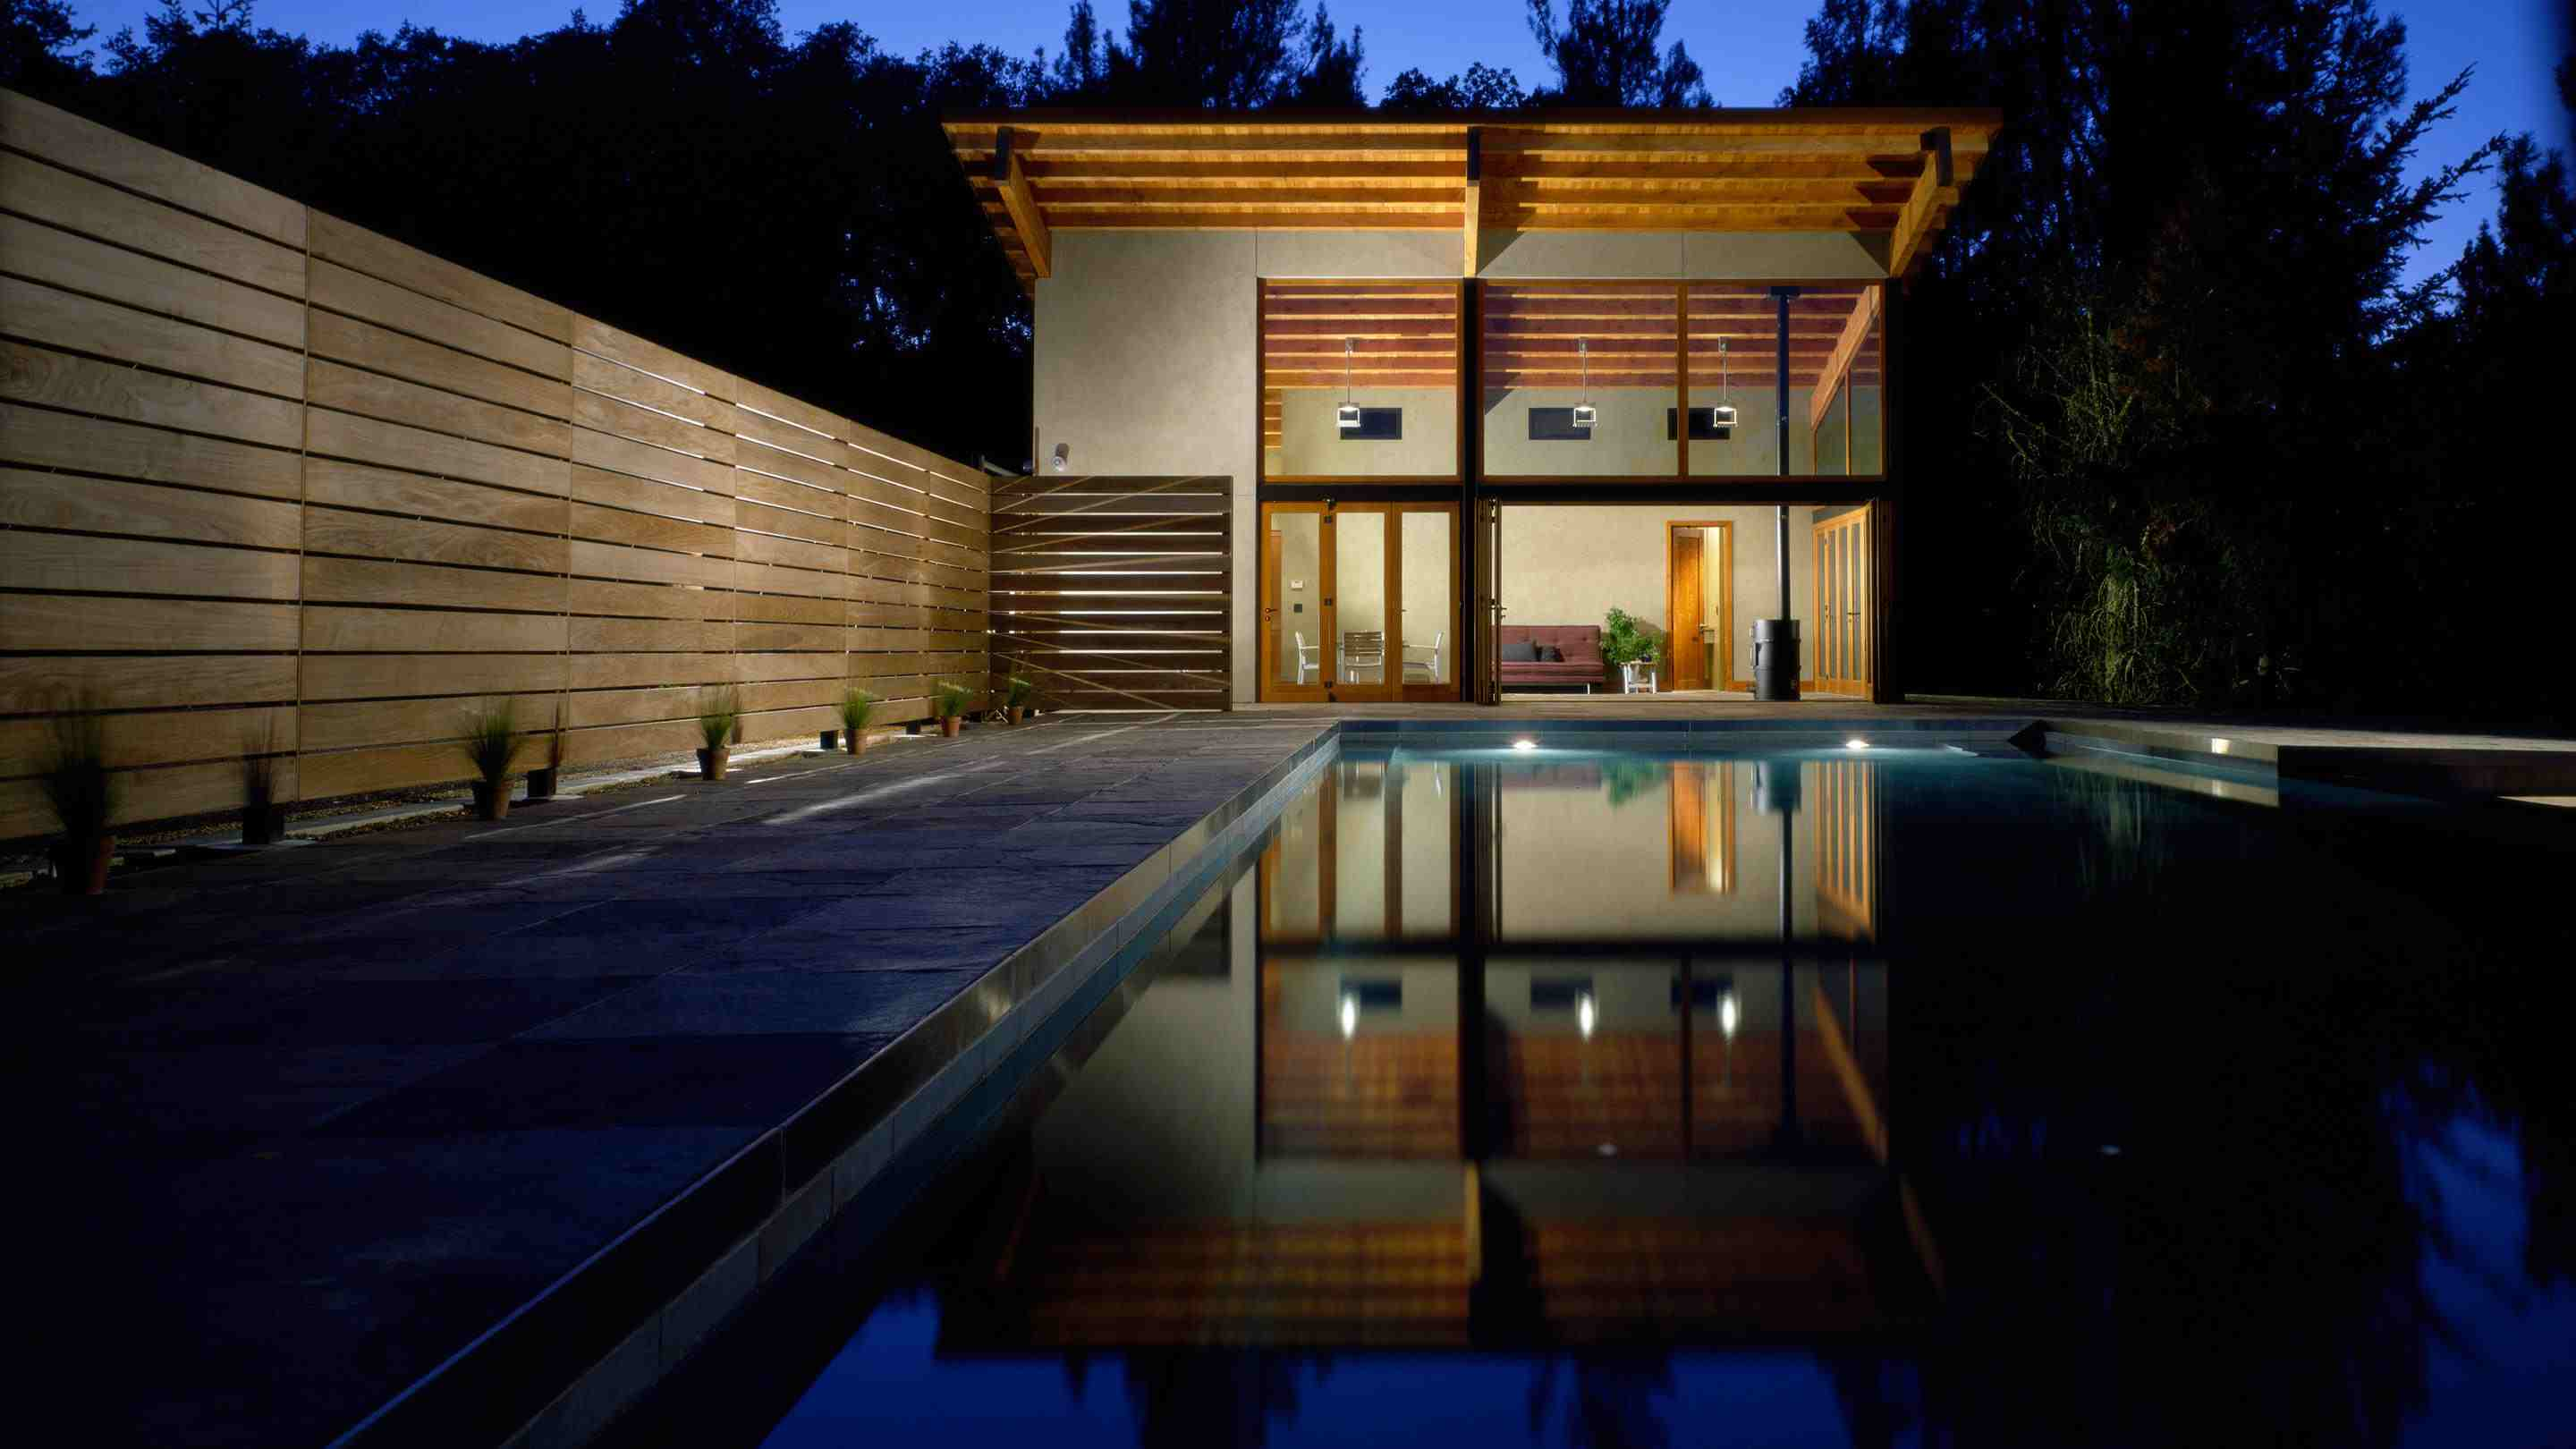 a pool house at night